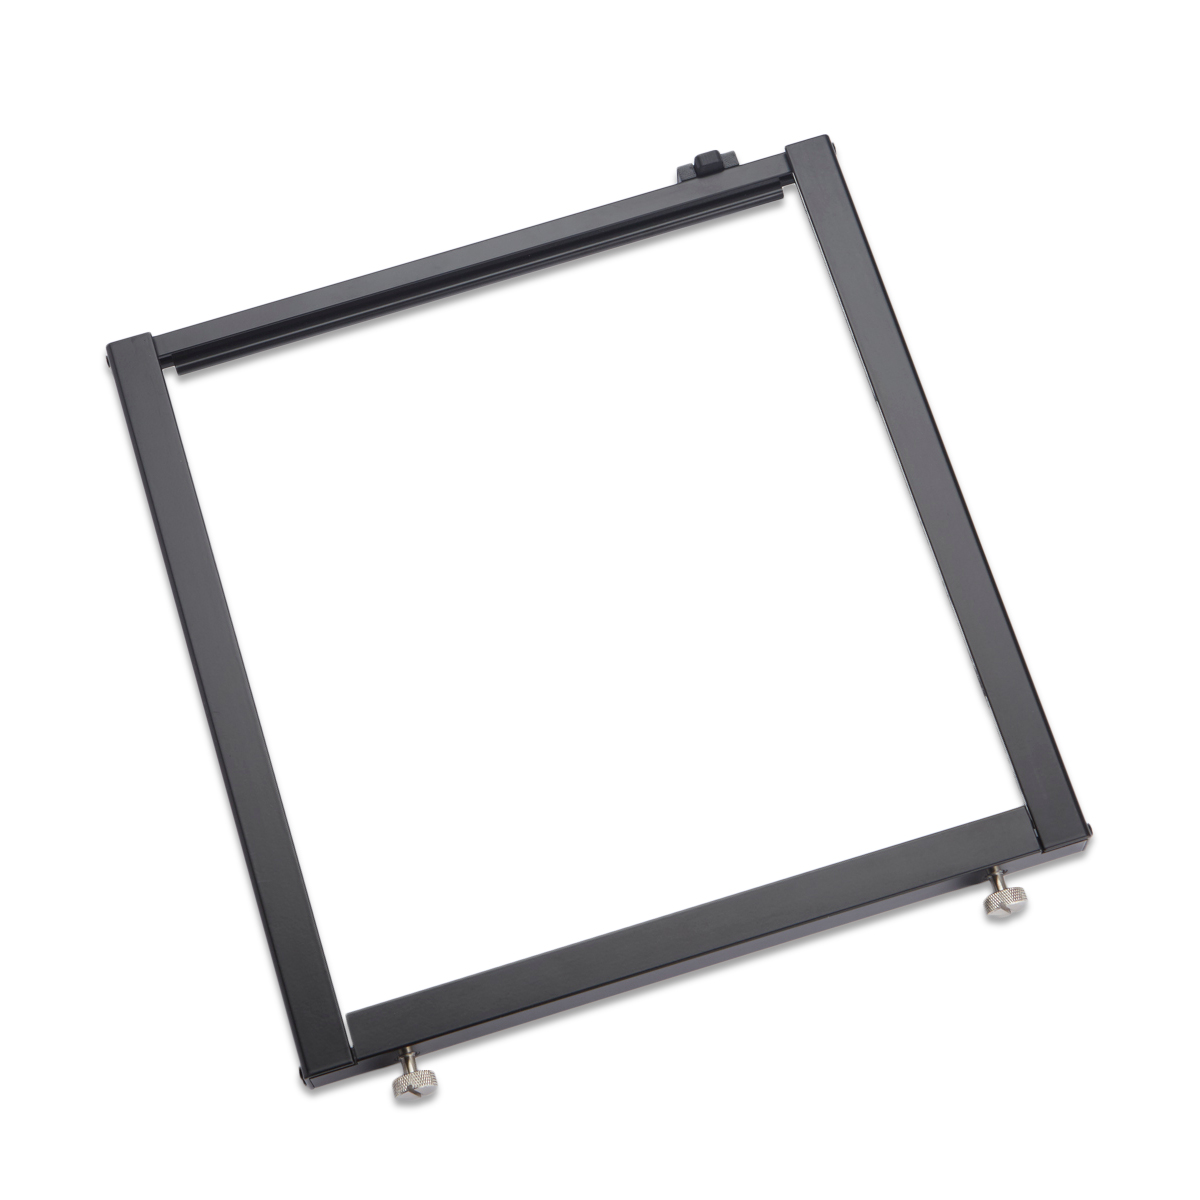 Adapter Frame